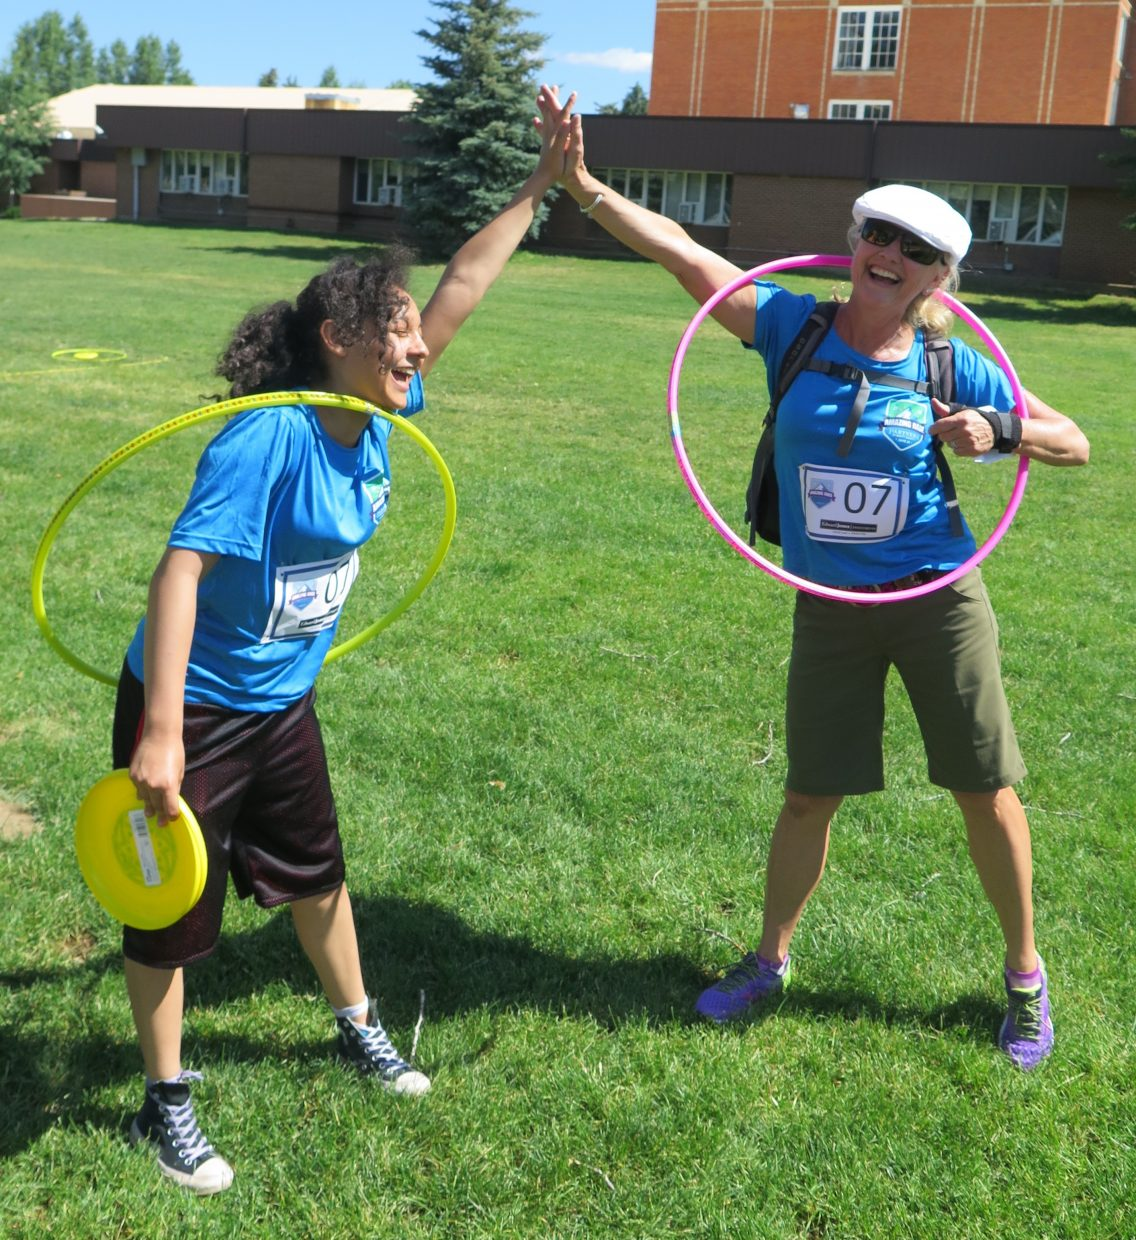 Toni Hennessy and Nicole participate in the Frisbee Hoopla challenge.